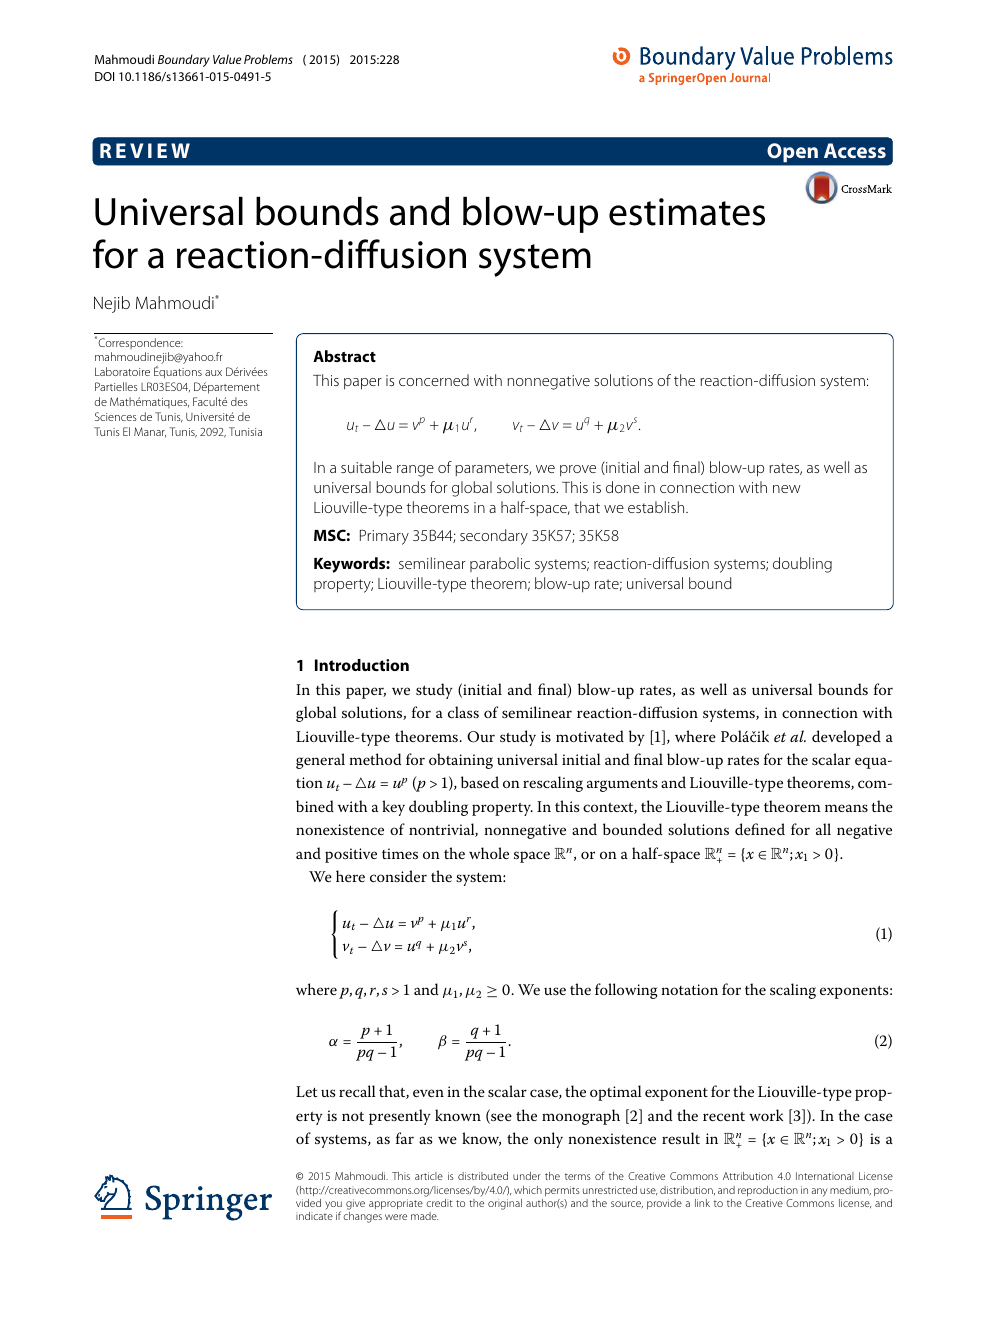 On the existence of blowing-up solutions for a mean field equation